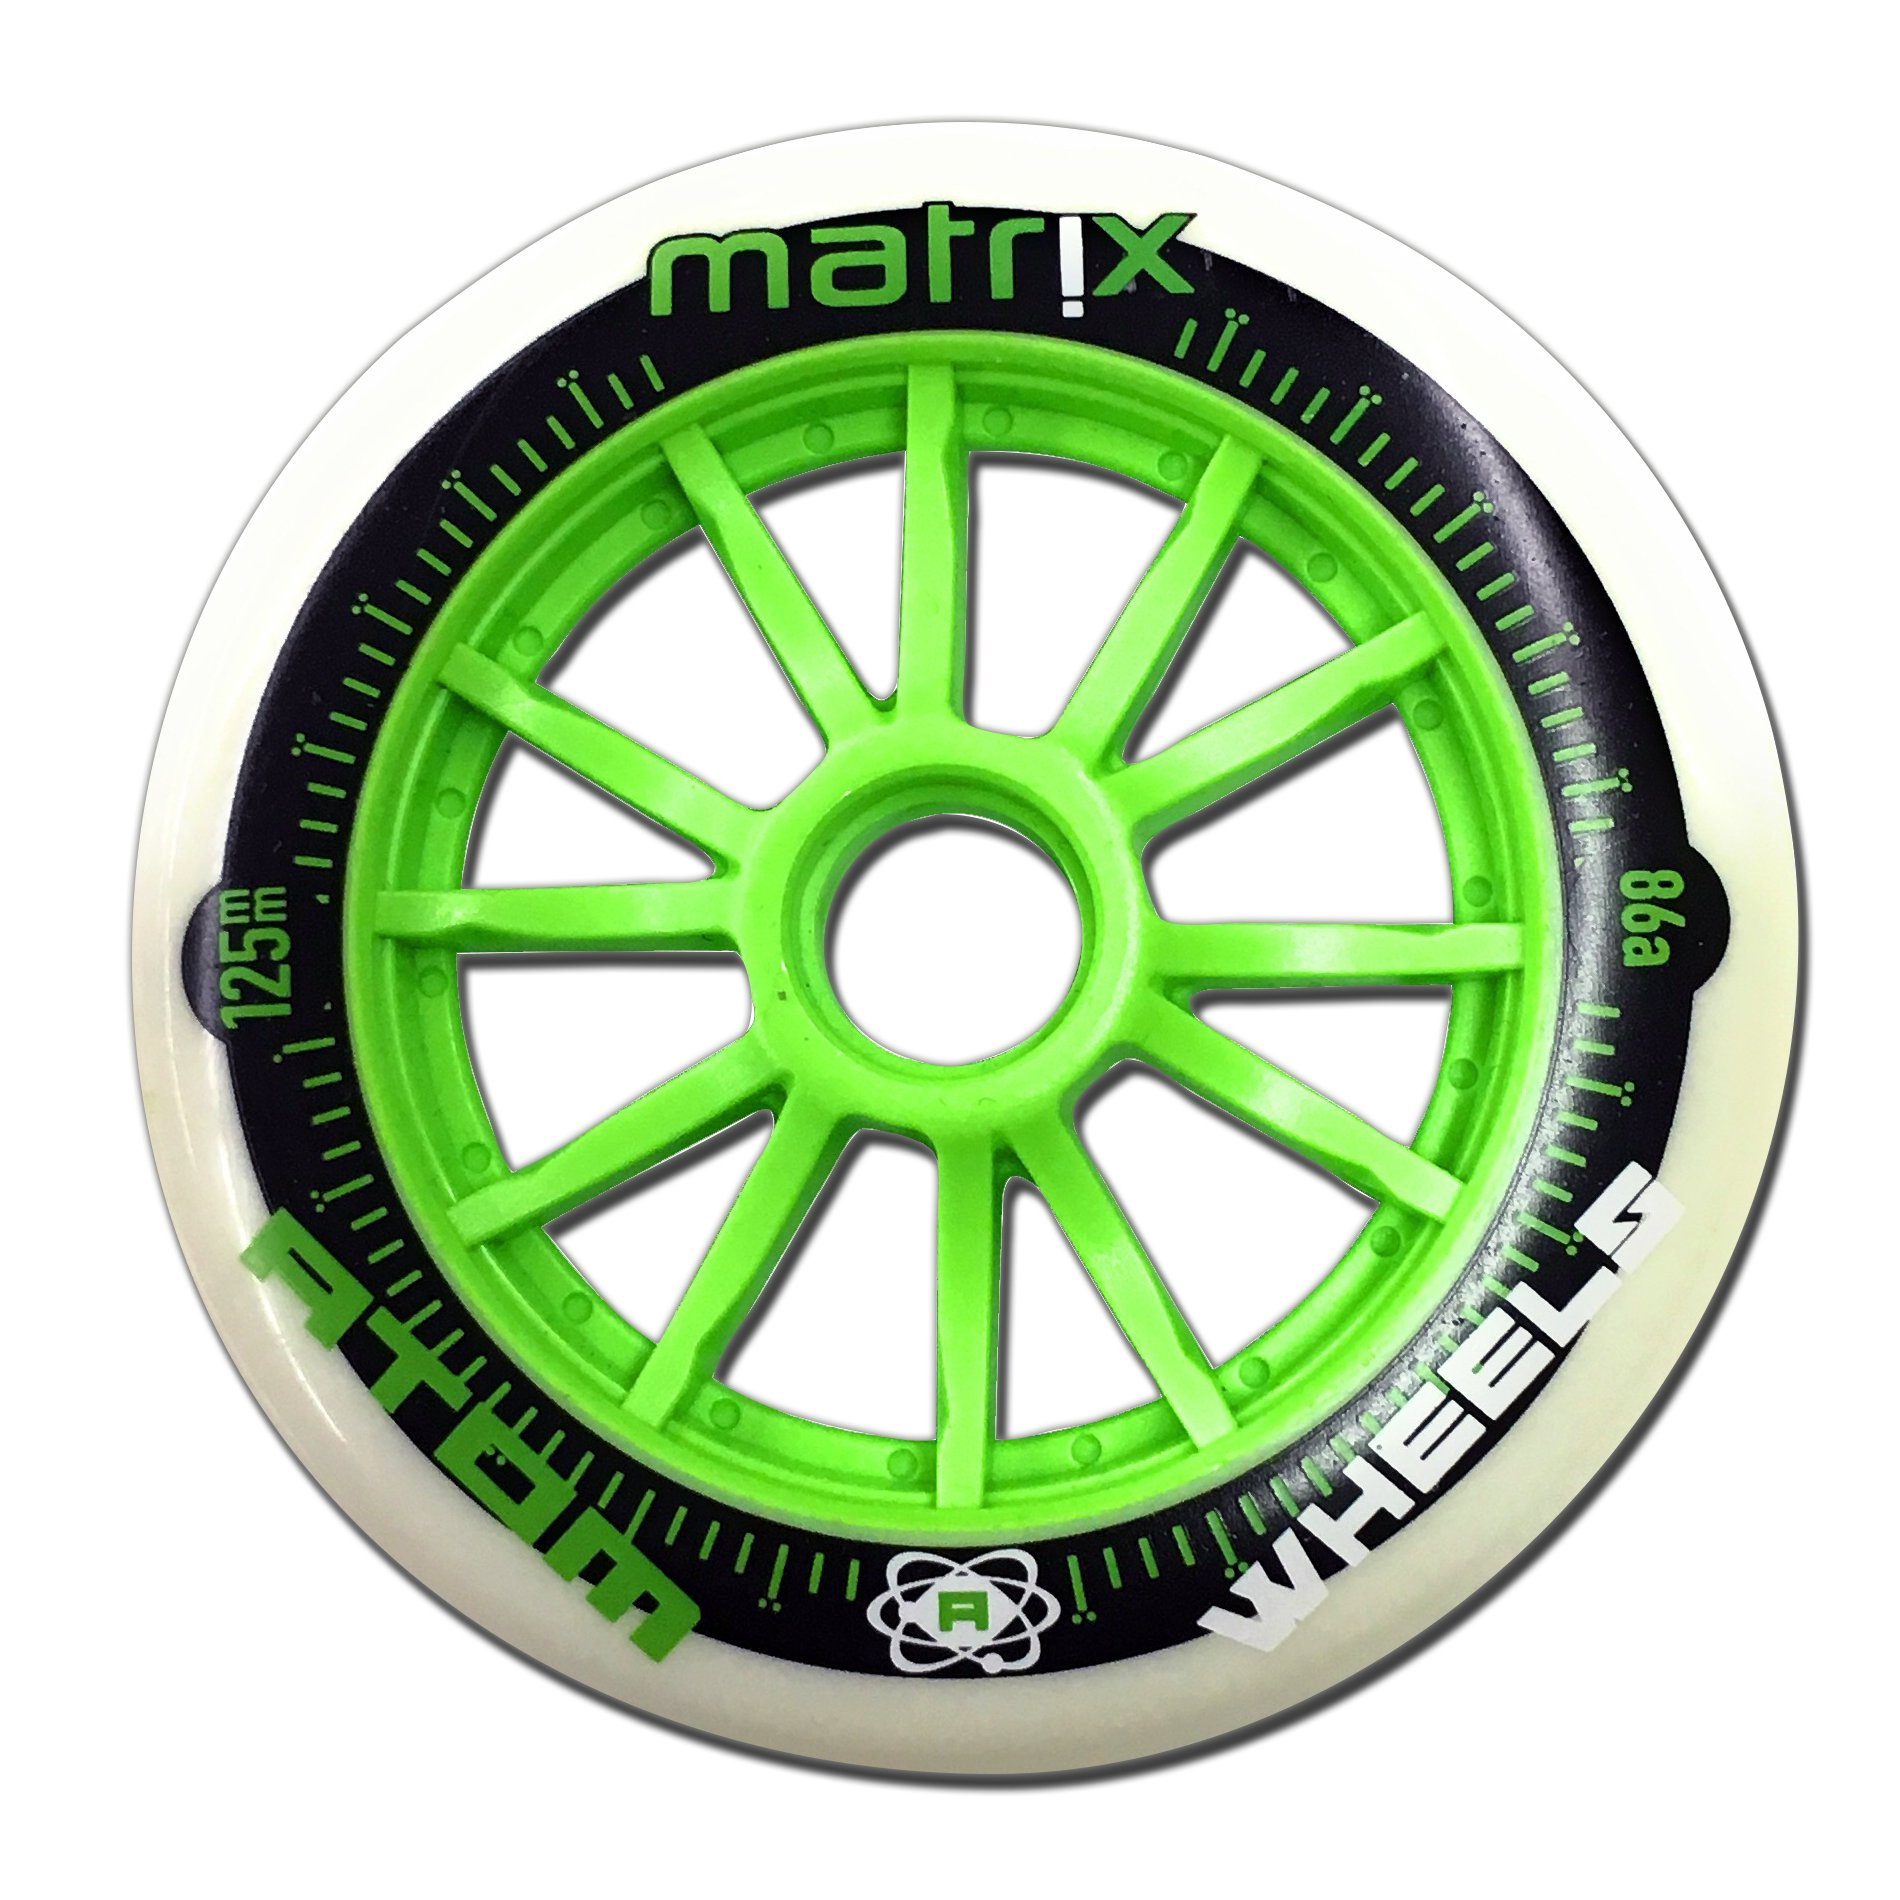 Atom Matrix Wheel Outdoor Wheel Green 125mm